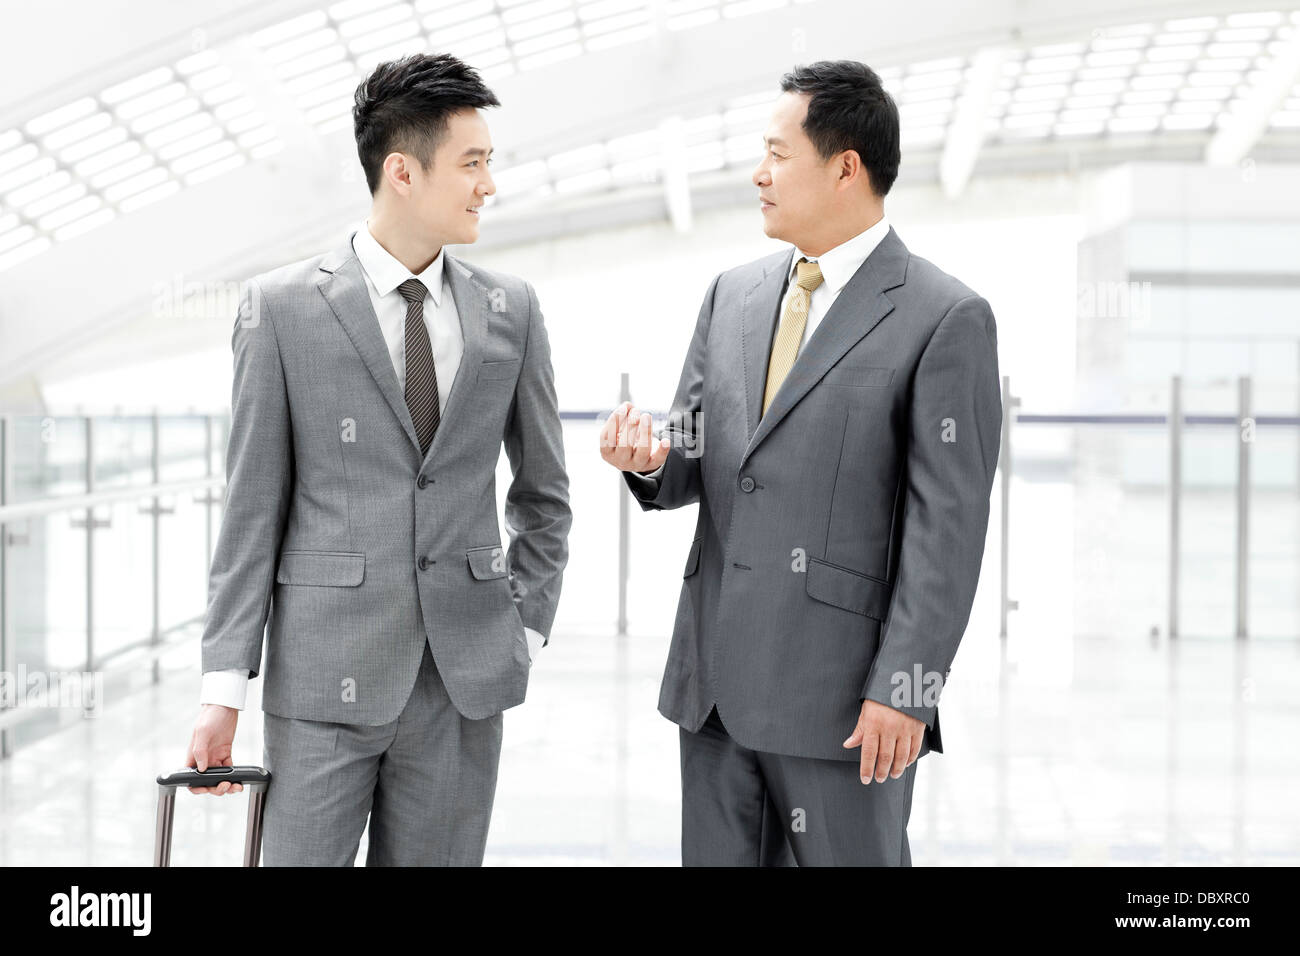 Business associates having conversation in airport lobby - Stock Image